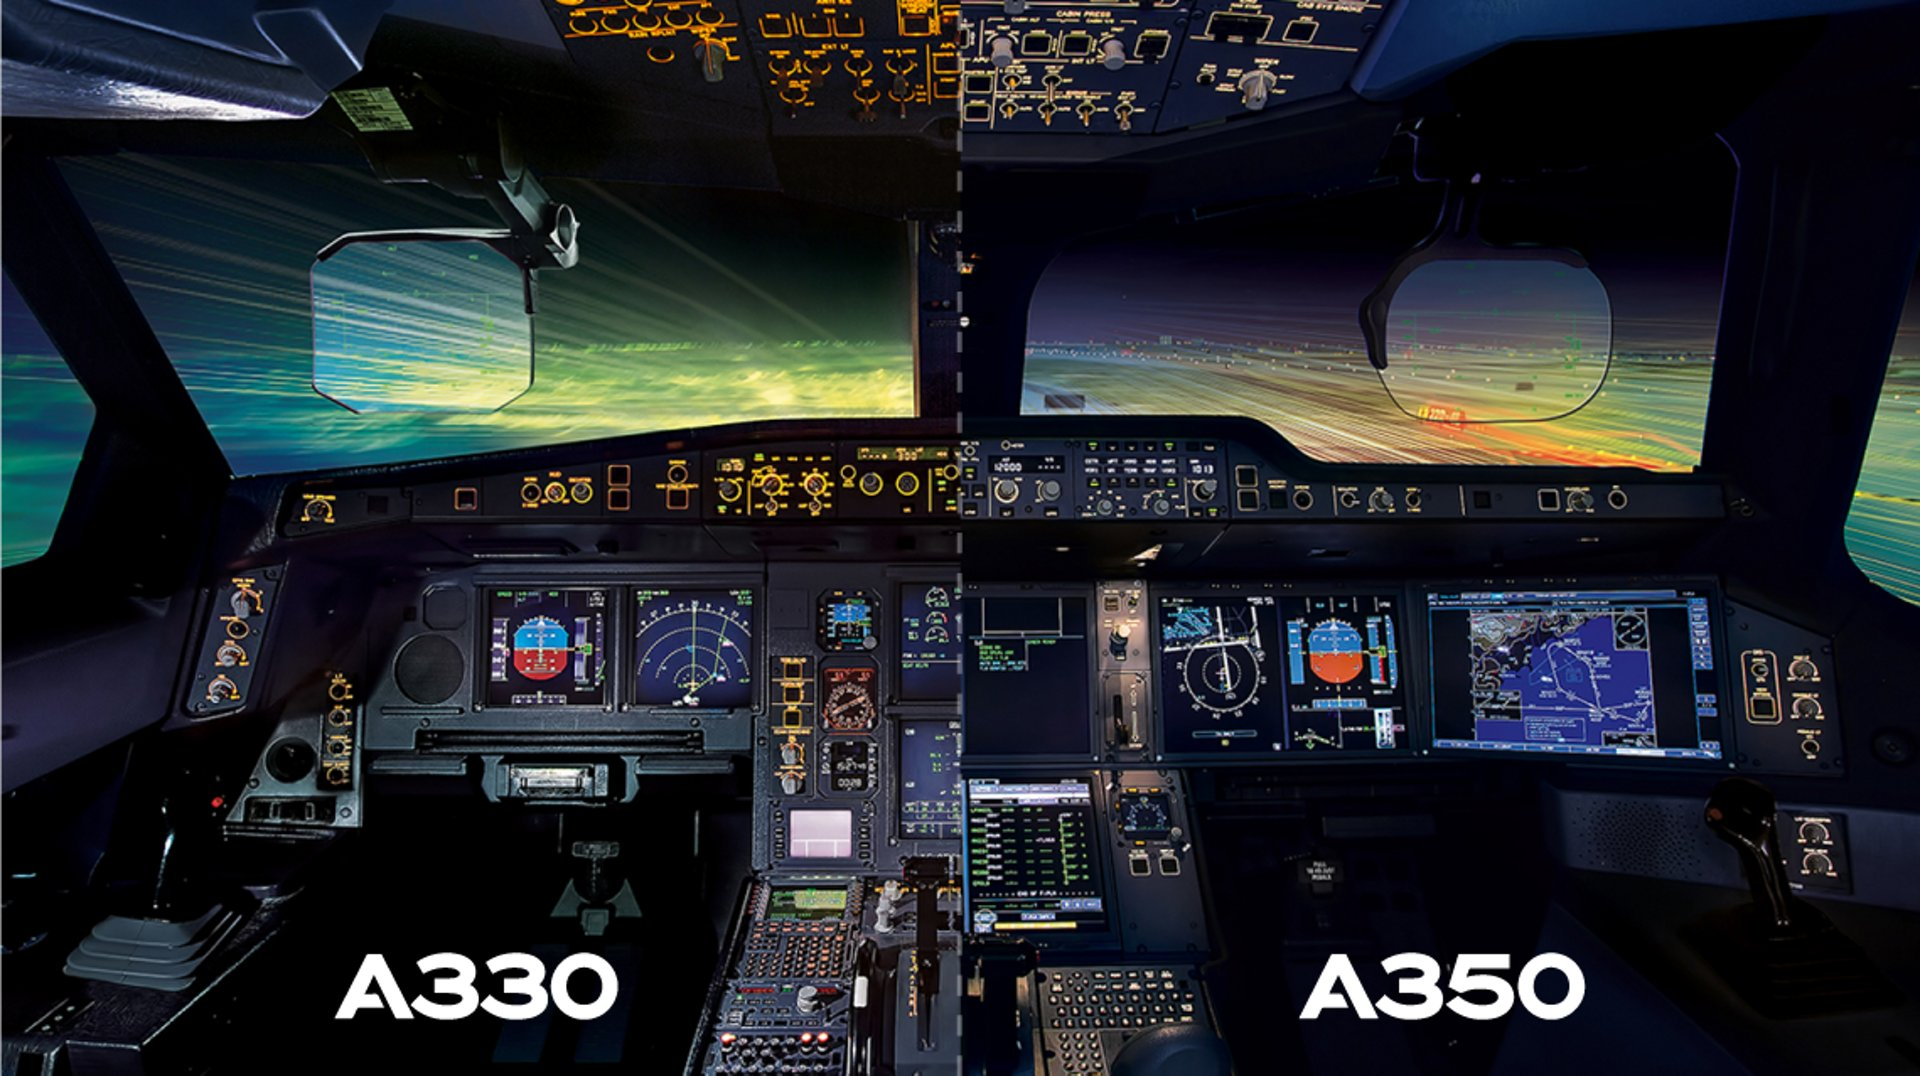 A330neo cockpit - Commonality with A350 innovations